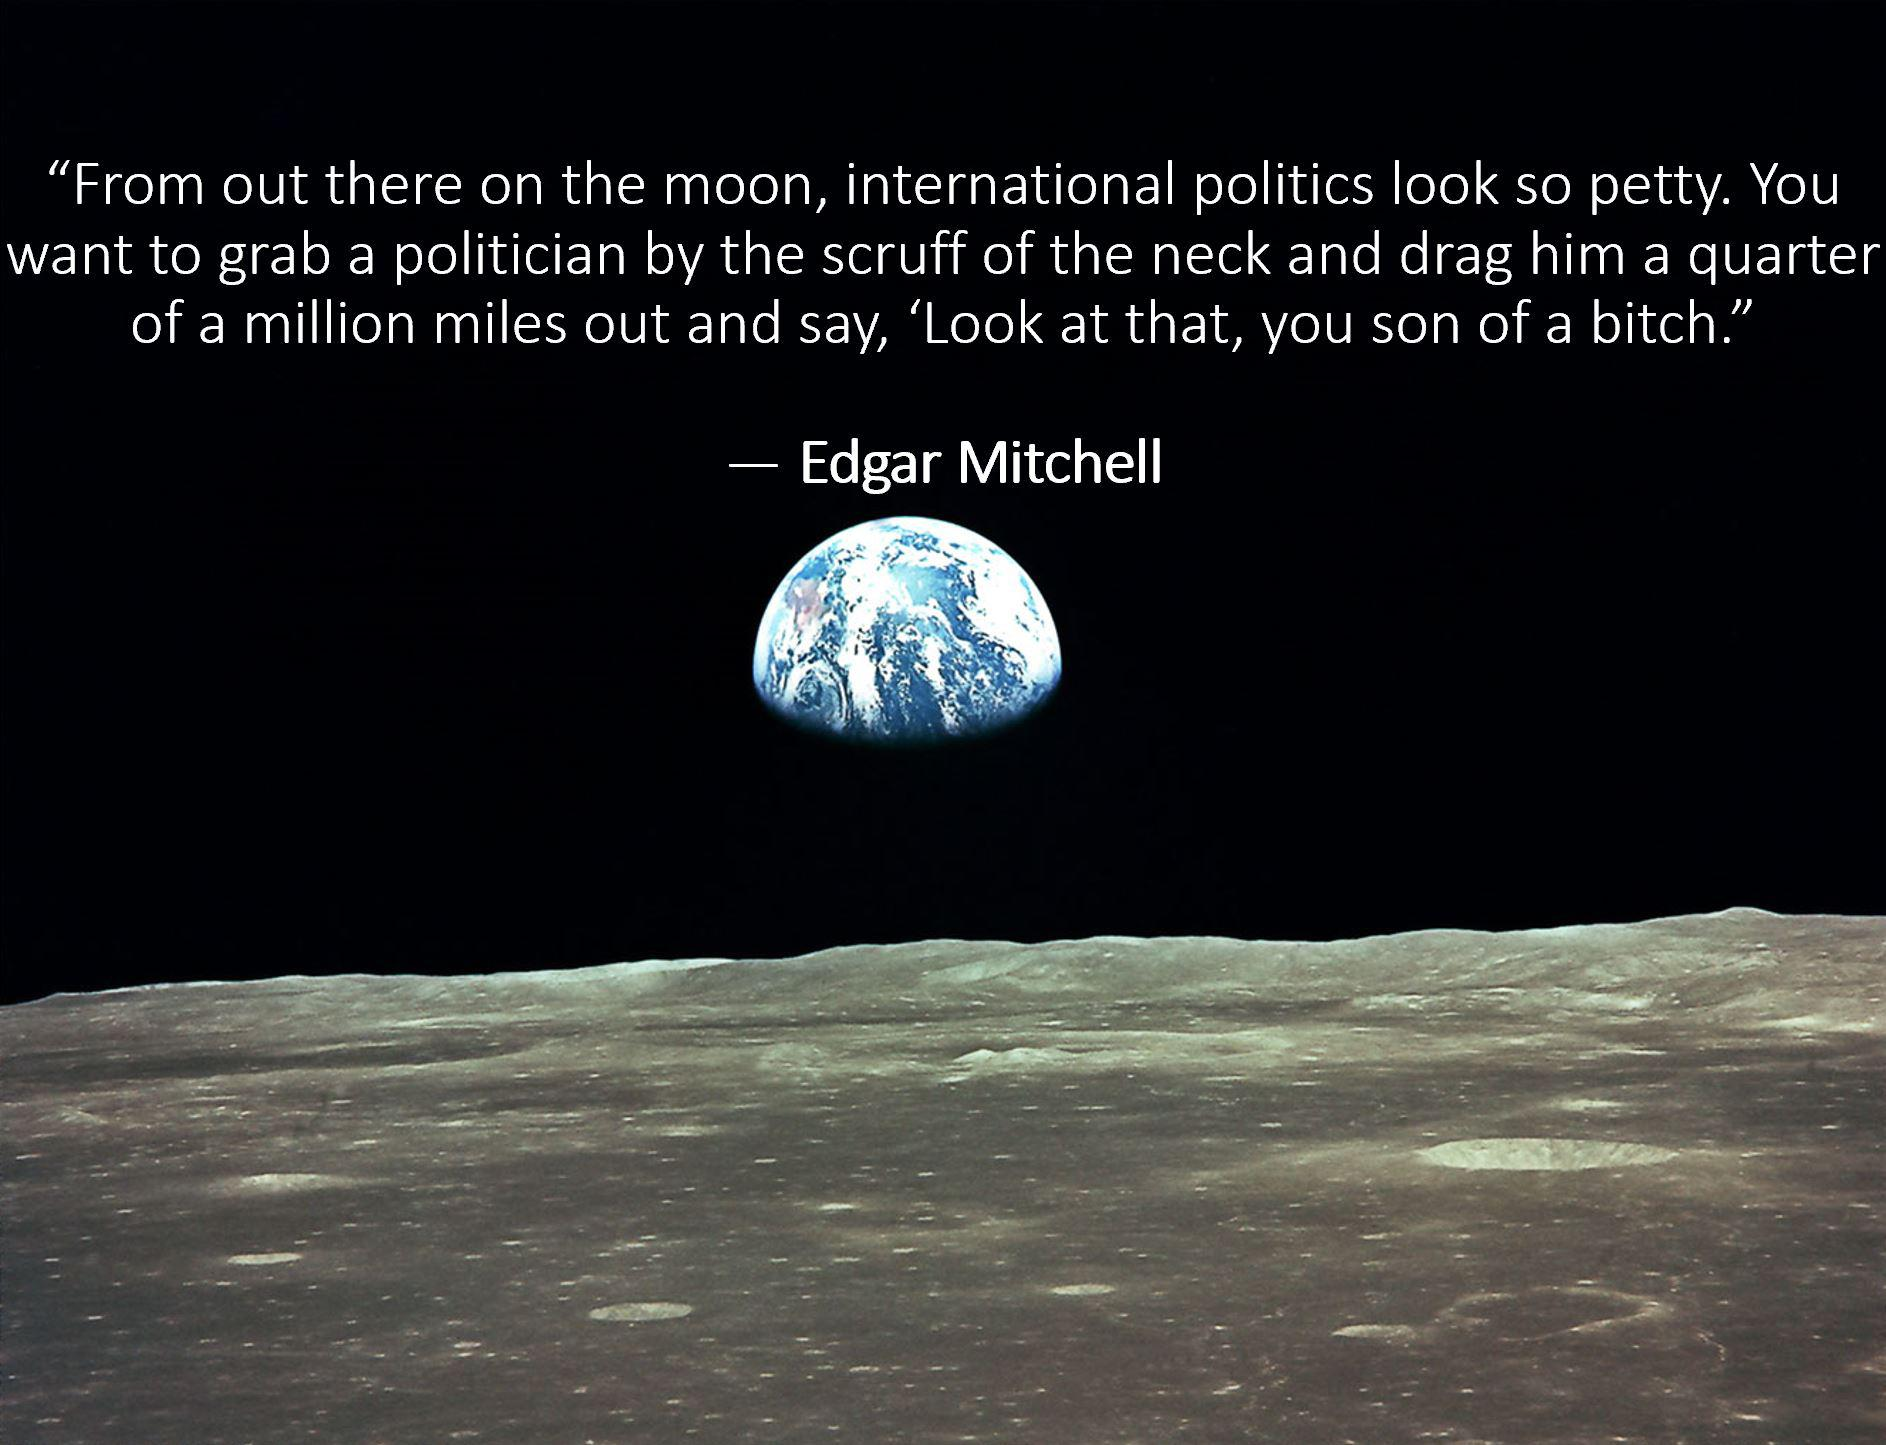 """From out there on the moon, international politics look so petty.""- Apollo 14 Astronaut Edgar D. Mitchell [1886 x 1445]"